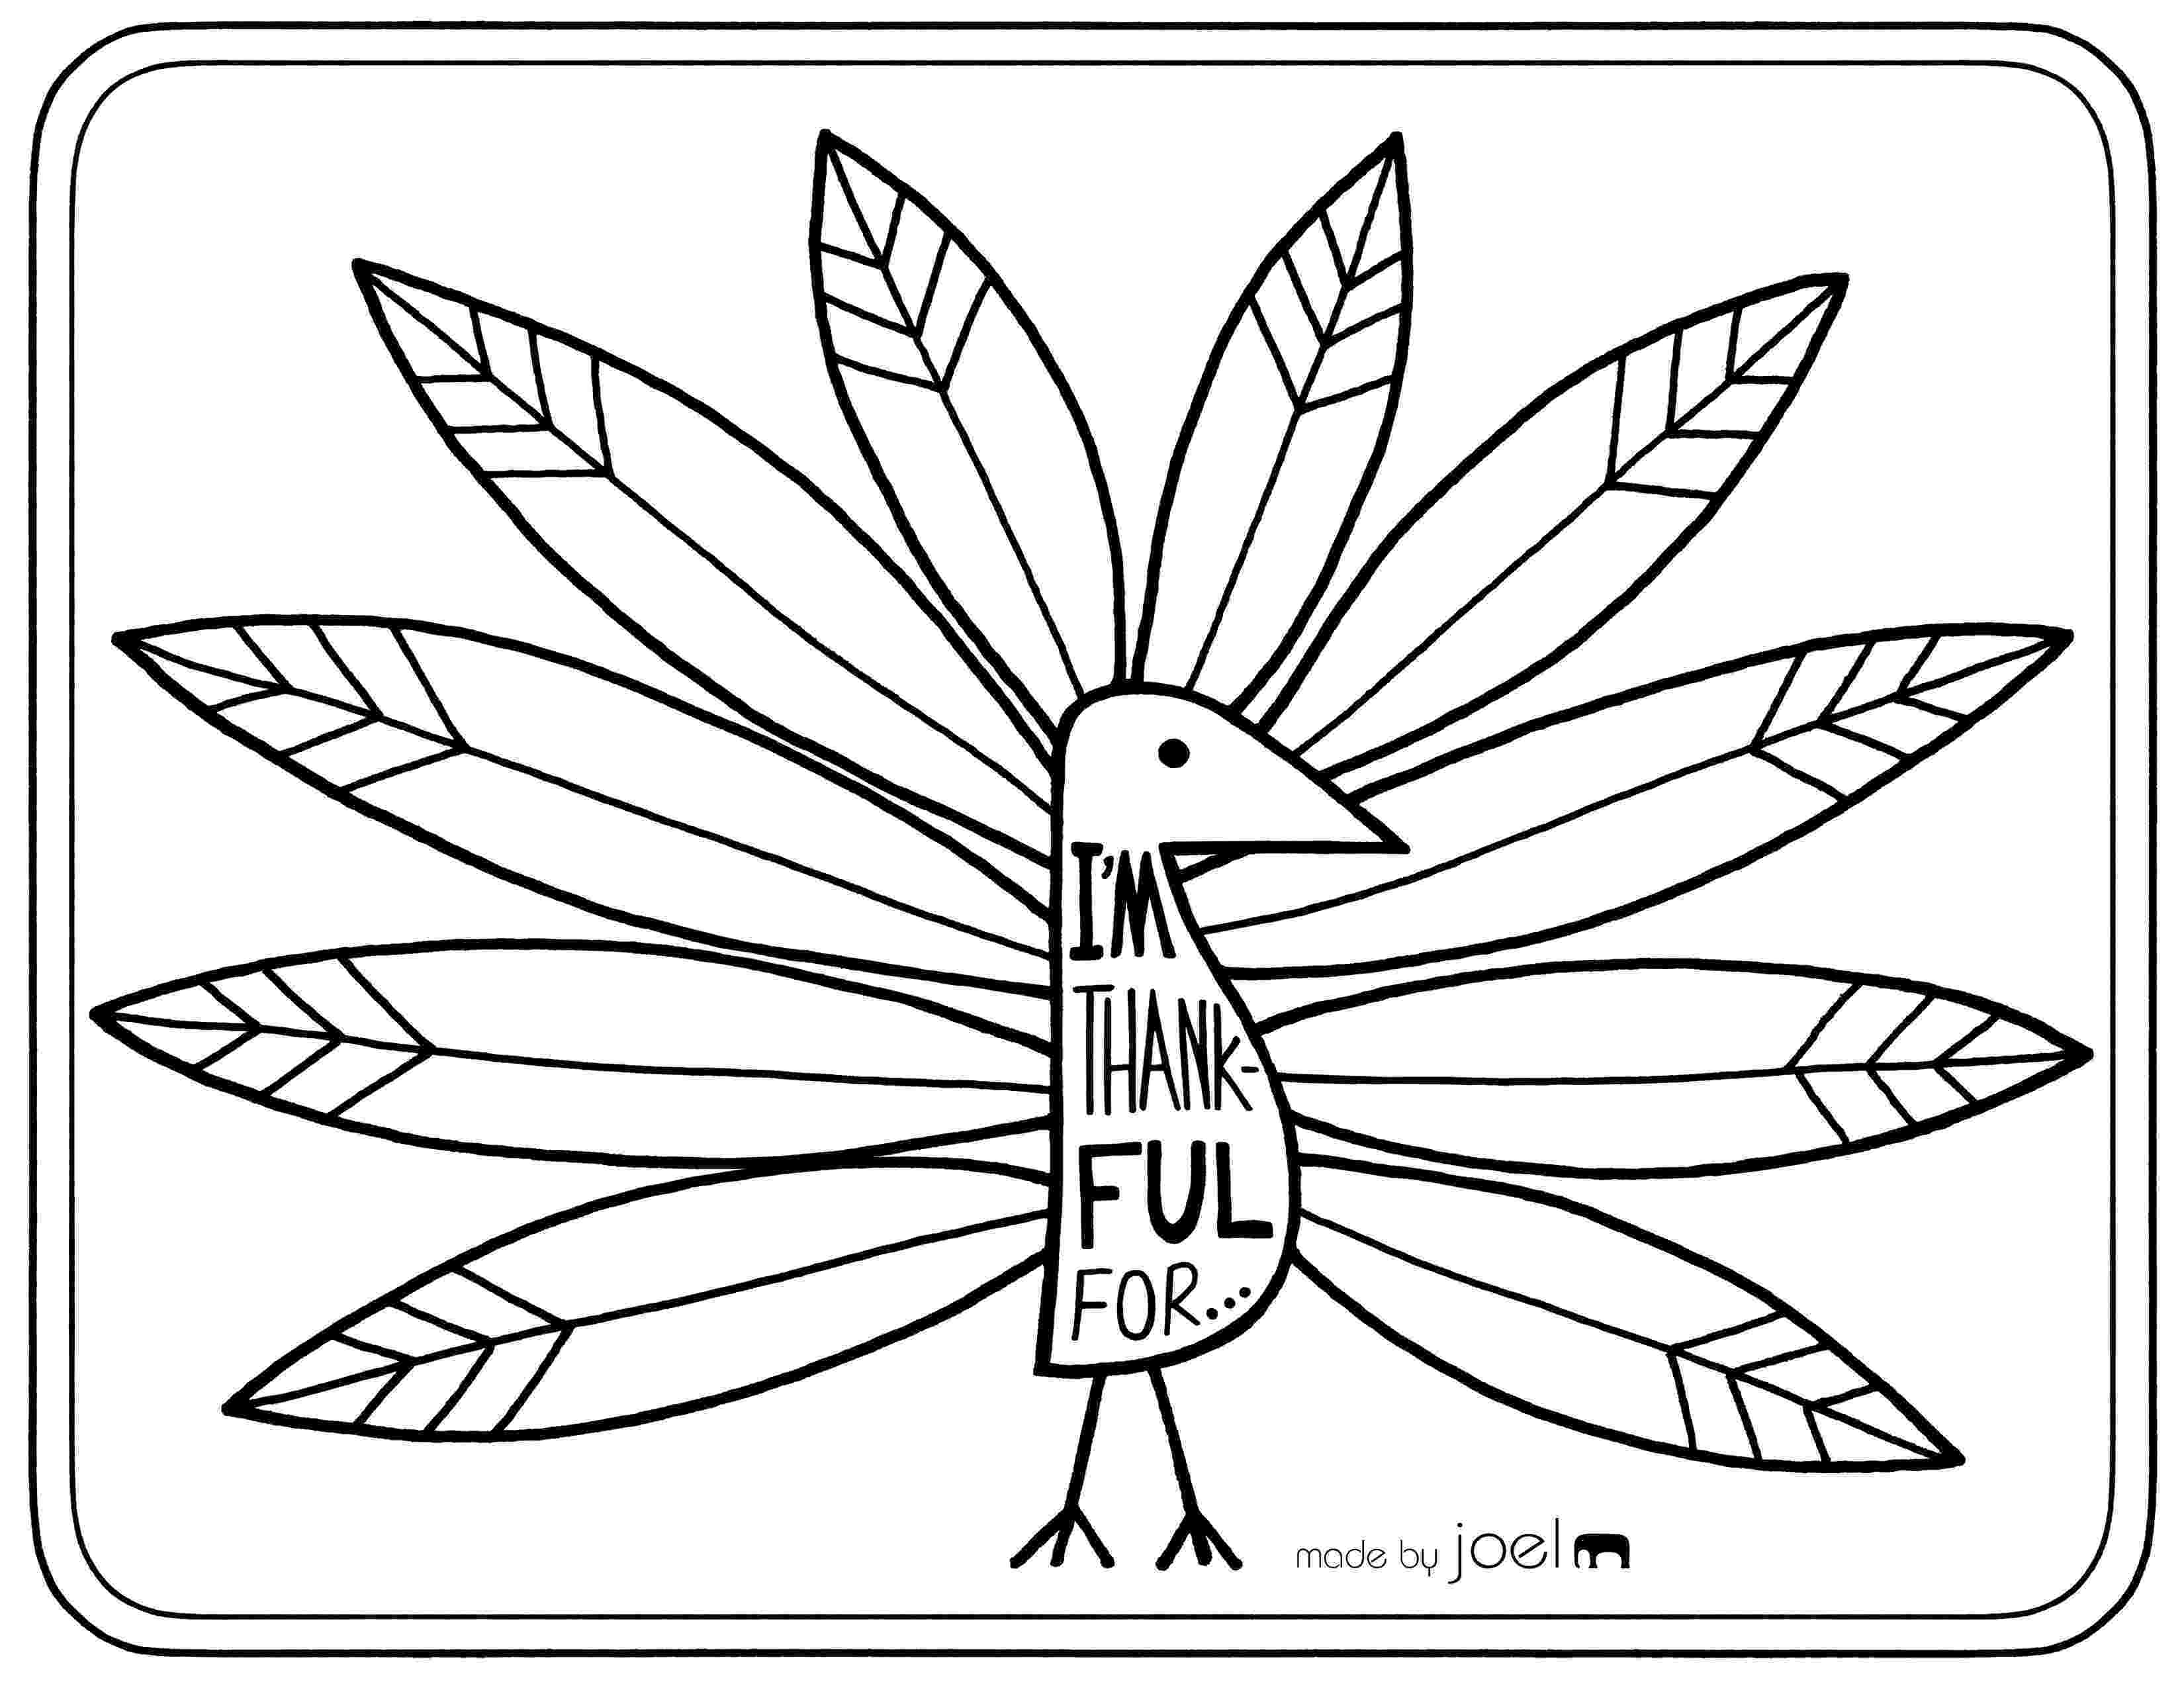 online coloring for 6 year olds coloring pages for 5 6 7 year old girls free printable for year olds 6 online coloring